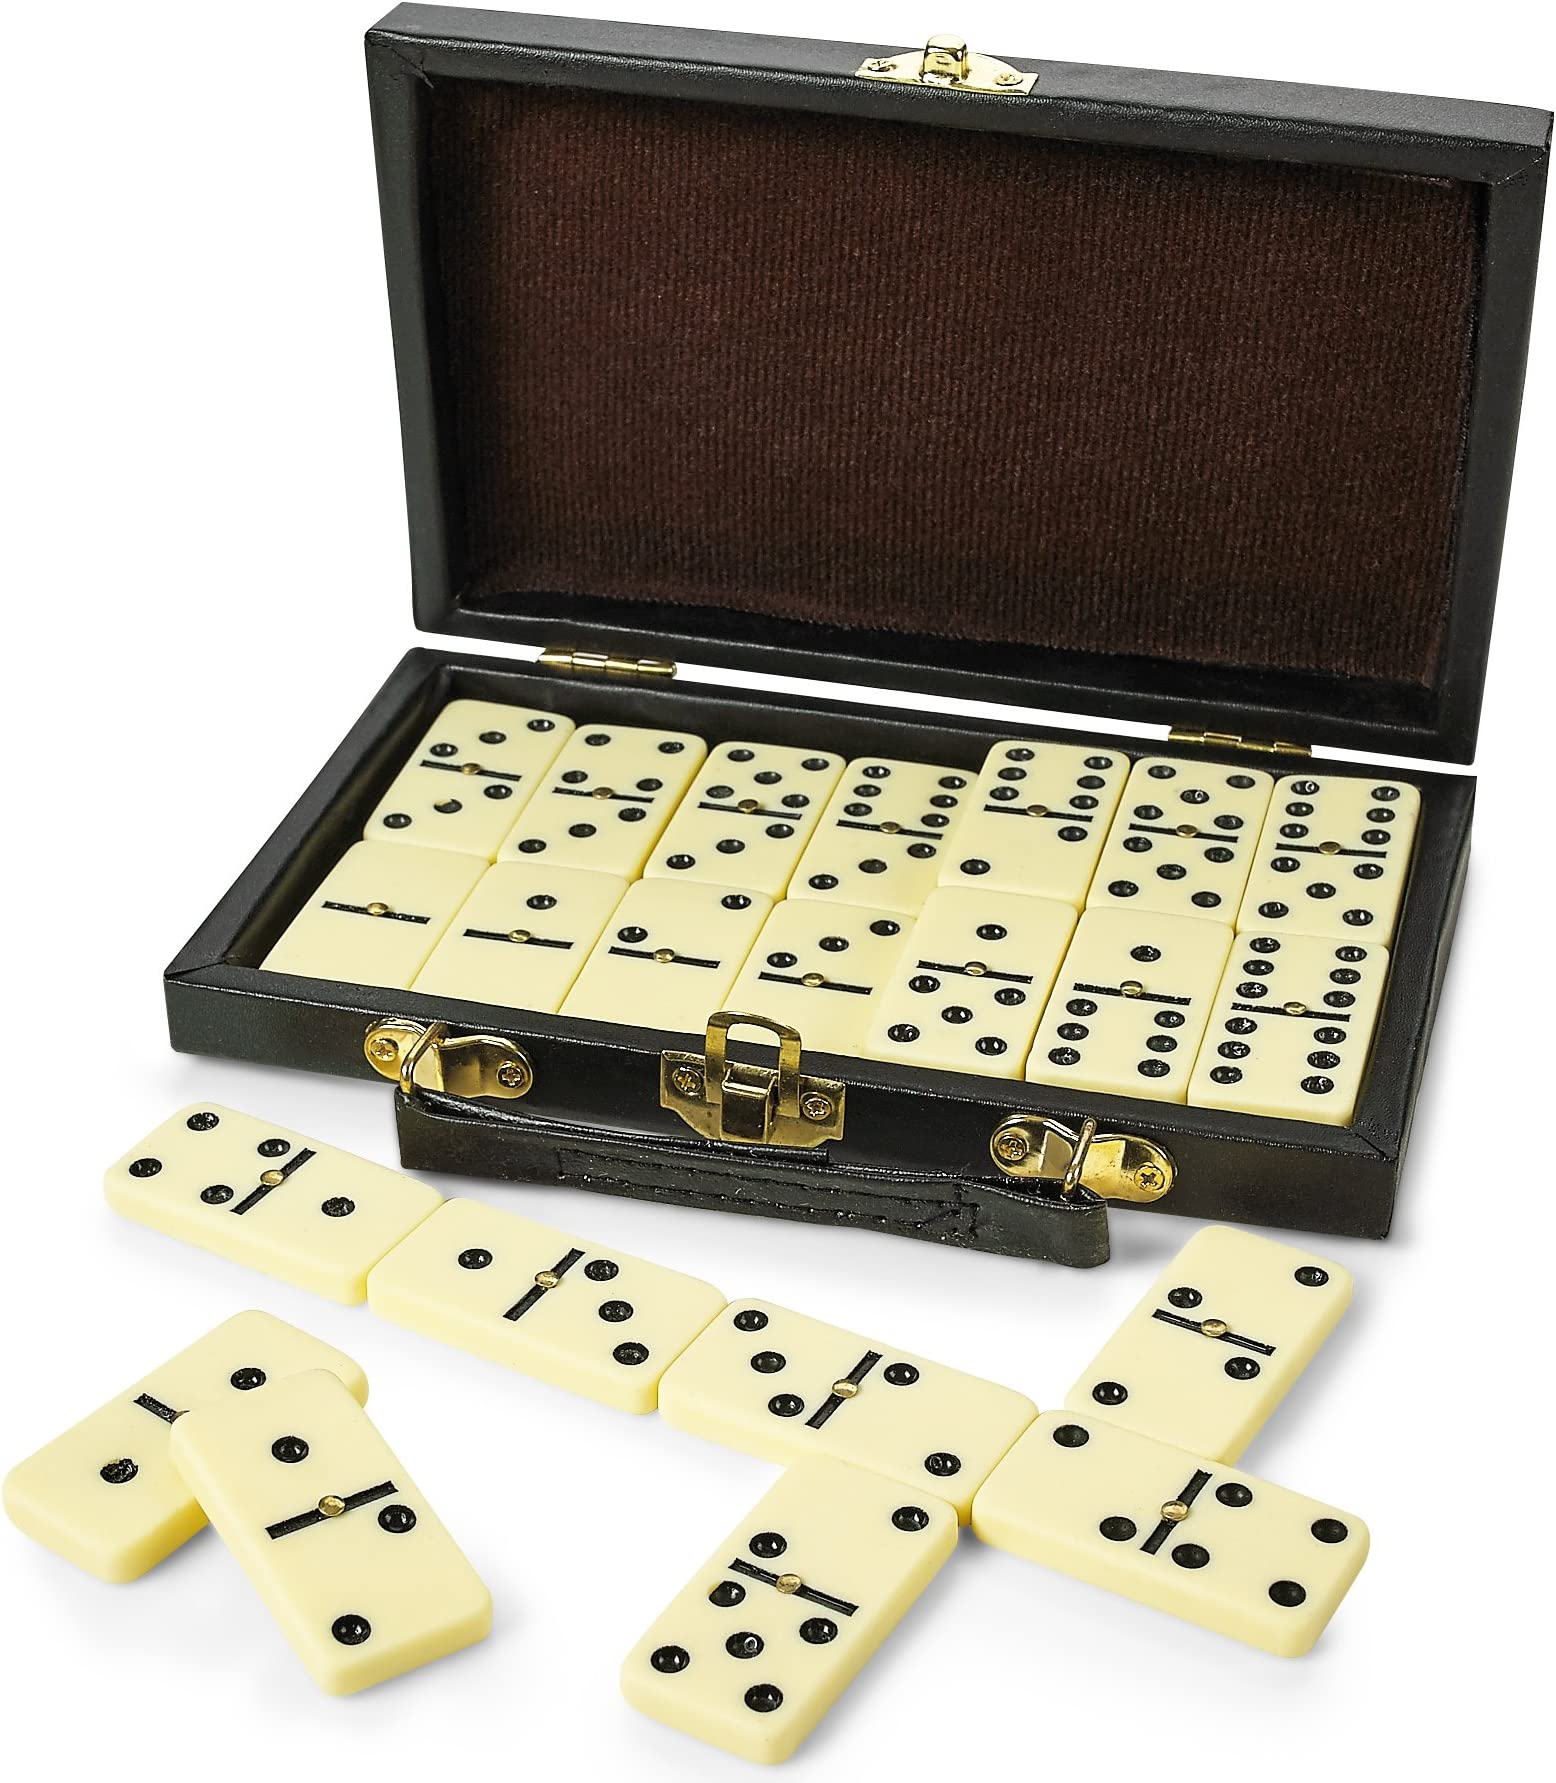 Dominoes Game Double Six 6 Professional Set 28 Piece Domino Tiles in Wooden Case